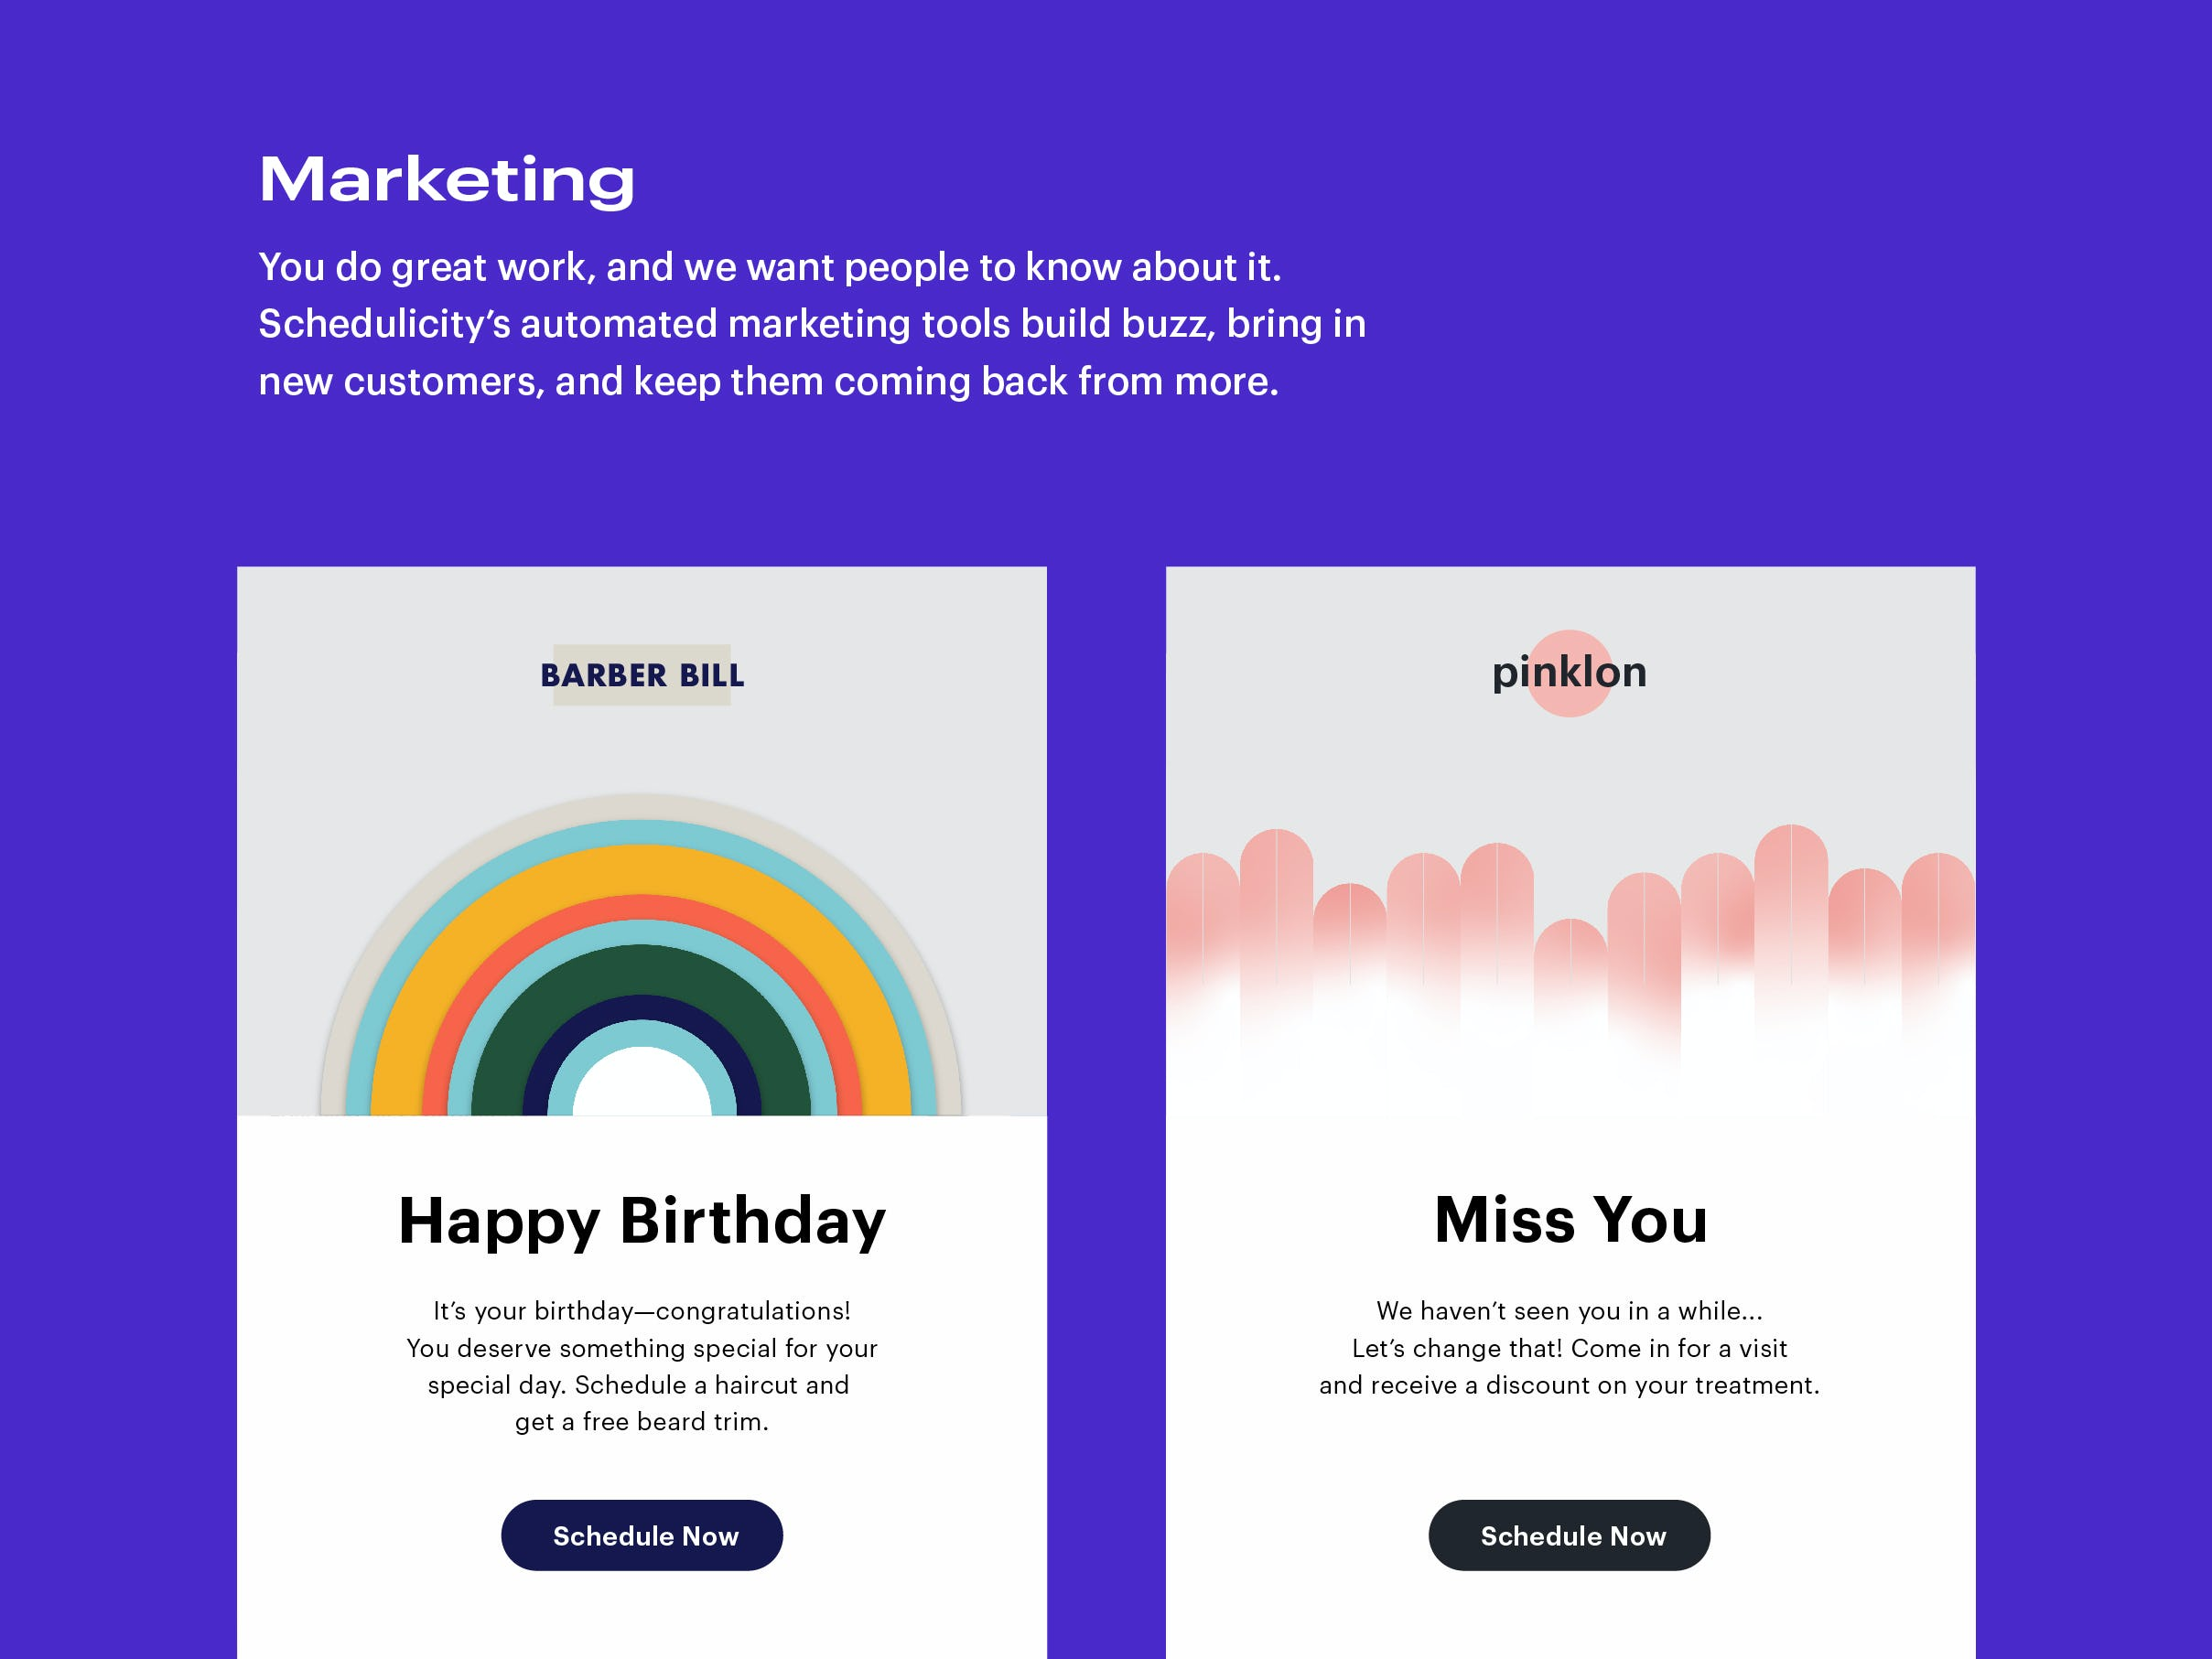 Schedulicity Software - Marketing: You do great work, and we want people to know about it. Schedulicity's automated marketing tools build buzz, bring in new customers, and keep them coming back from more.